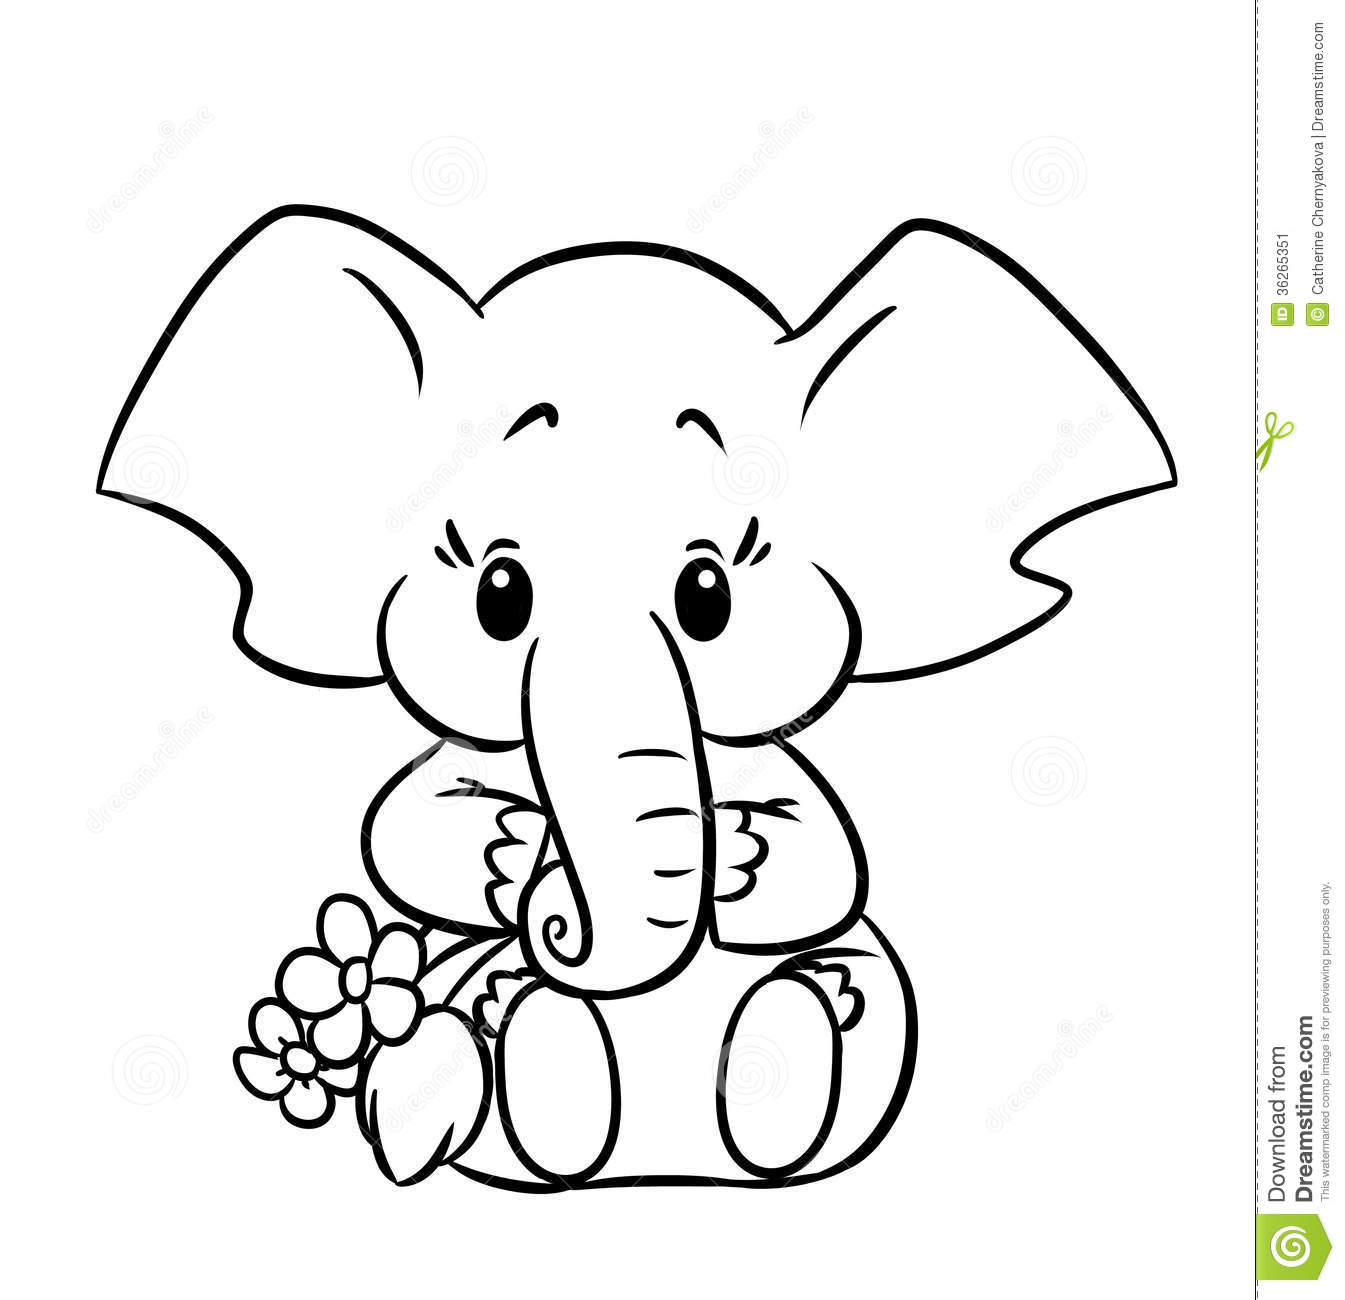 e elephant coloring pages - photo#44